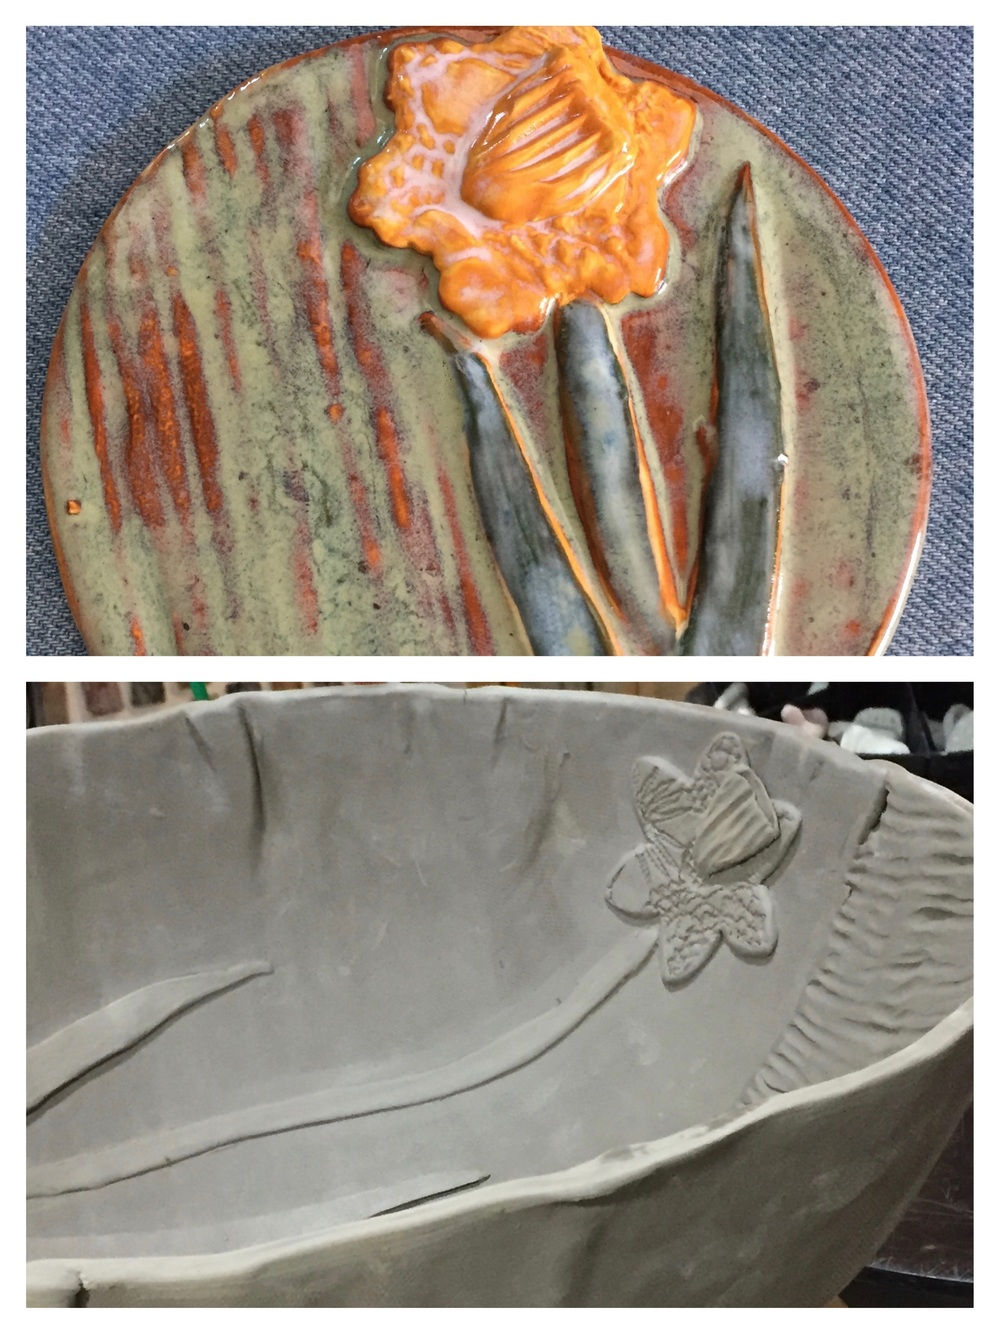 I've been working on a daffodil design for a customer. Each Spring he invites guests to view his vast meadows brimming with these beautiful flowers. He asked me to make a piece for him that incorporated a daffodil in the design. I made this test tile to see how the glaze would come out before I applied it to the large centerpiece bowl I've created for his home. I'm happy with the results.